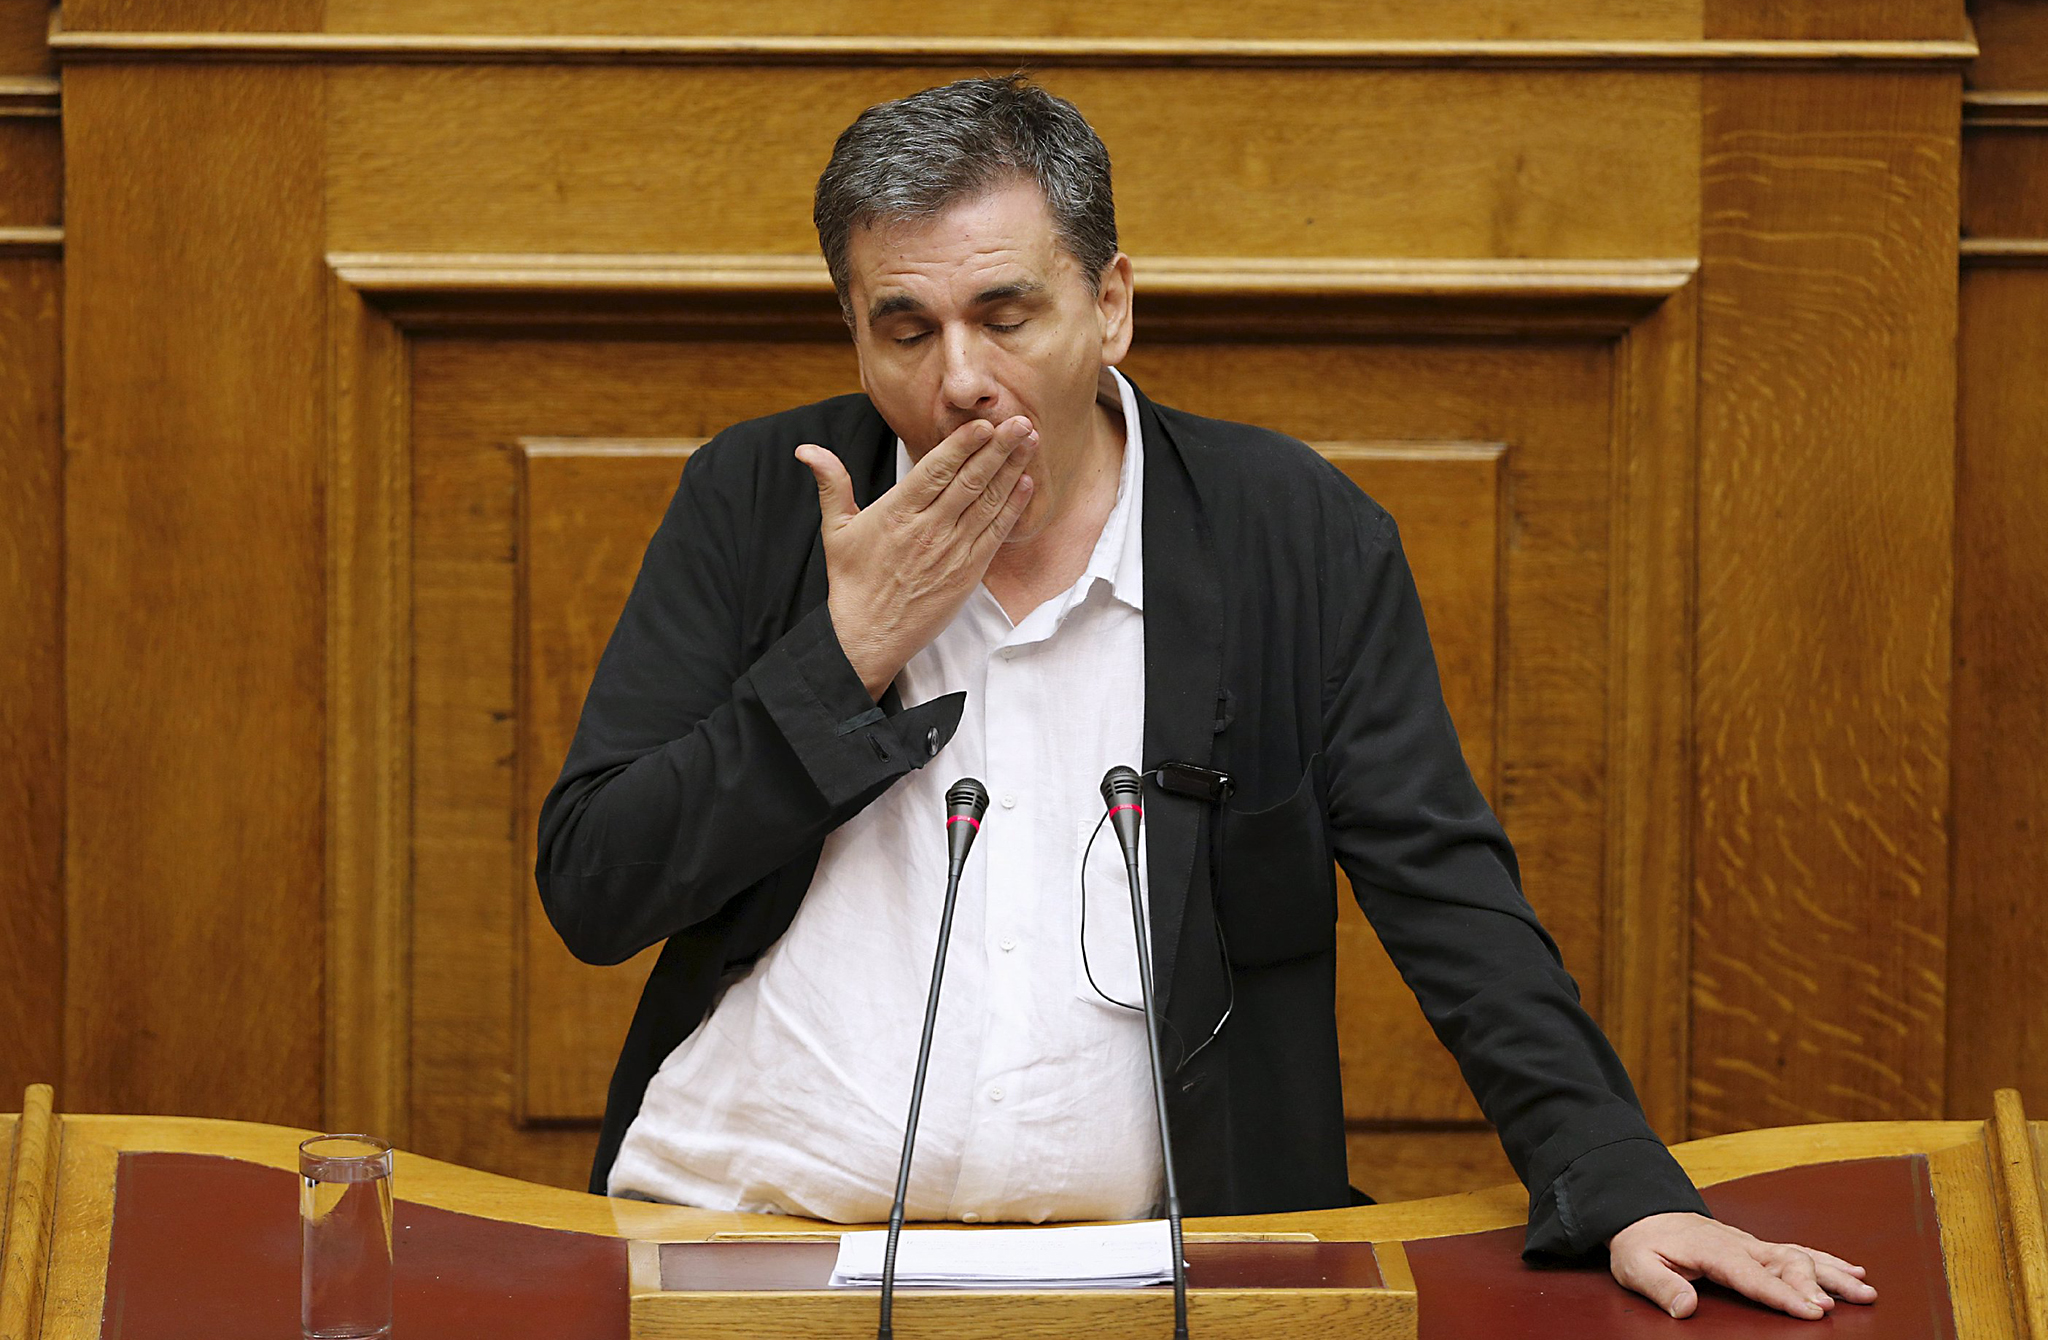 "Greek Finance Minister Euclid Tsakalotos reacts as deputies attempt to disrupt his speech during a night parliamentary session in Athens...ATTENTION EDITORS - REUTERS PICTURE HIGHLIGHTGreek Finance Minister Euclid Tsakalotos reacts as deputies attempt to disrupt his speech during a night parliamentary session in Athens, Greece, early August 14, 2015. Greek lawmakers debated a draft bill on the latest bailout deal, which the government hopes will be approved ahead of a euro zone finance ministers meeting in Brussels on Friday. REUTERS/Christian Hartmann  TPX IMAGES OF THE DAYREUTERS NEWS PICTURES HAS NOW MADE IT EASIER TO FIND THE BEST PHOTOS FROM THE MOST IMPORTANT STORIES AND TOP STANDALONES EACH DAY. Search for ""TPX"" in the IPTC Supplemental Category field or ""IMAGES OF THE DAY"" in the Caption field and you will find a selection of 80-100 of our daily Top Pictures.REUTERS NEWS PICTURES. TEMPLATE OUT"